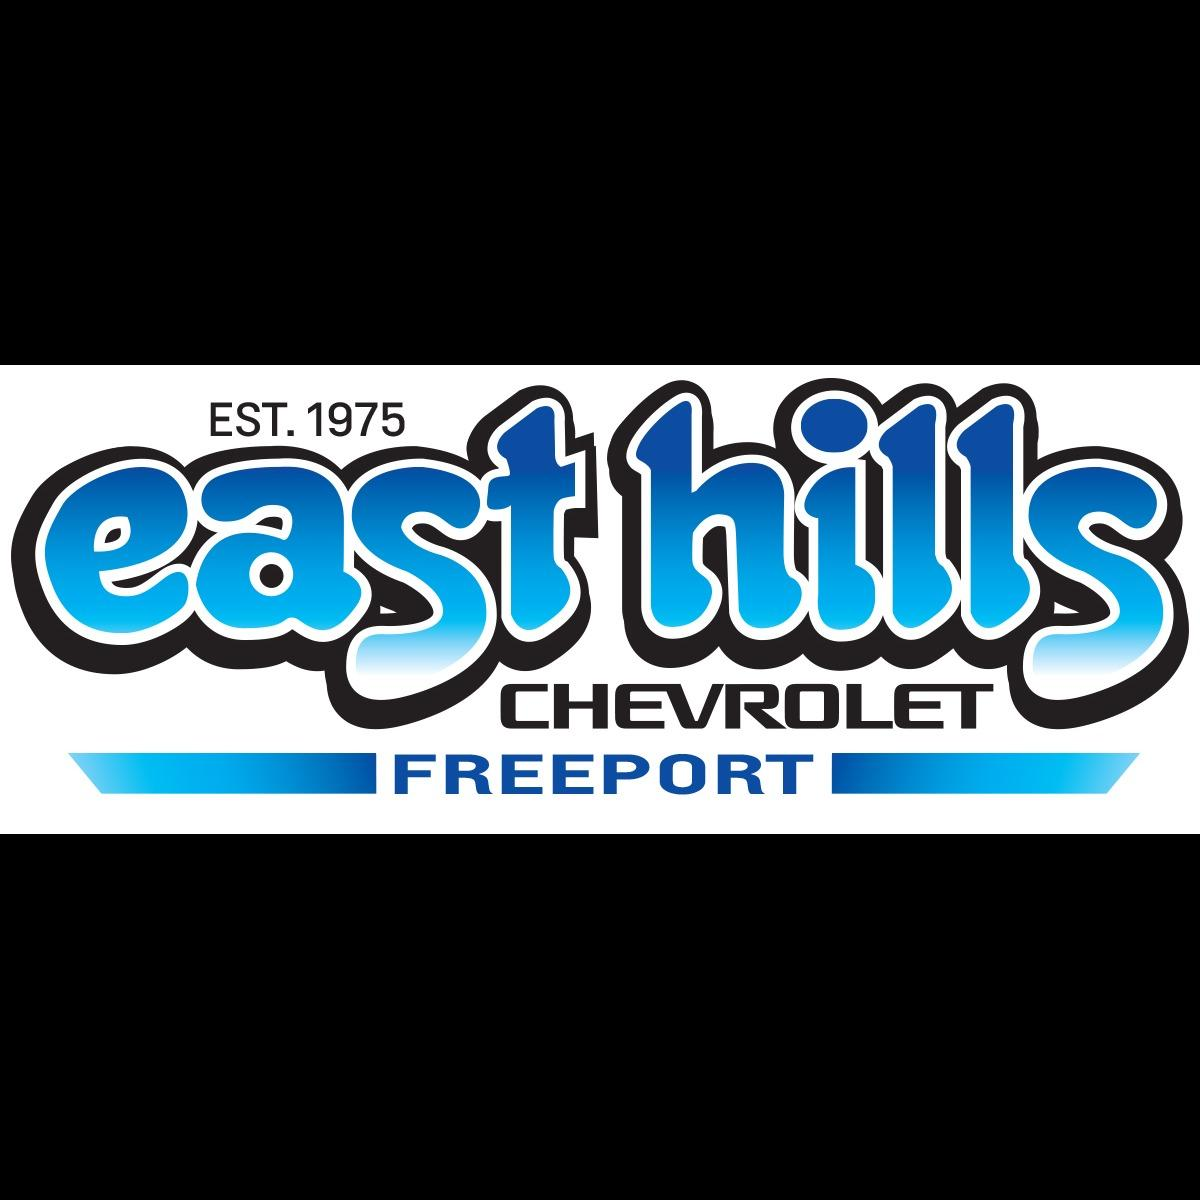 East Hills Chevrolet of Freeport